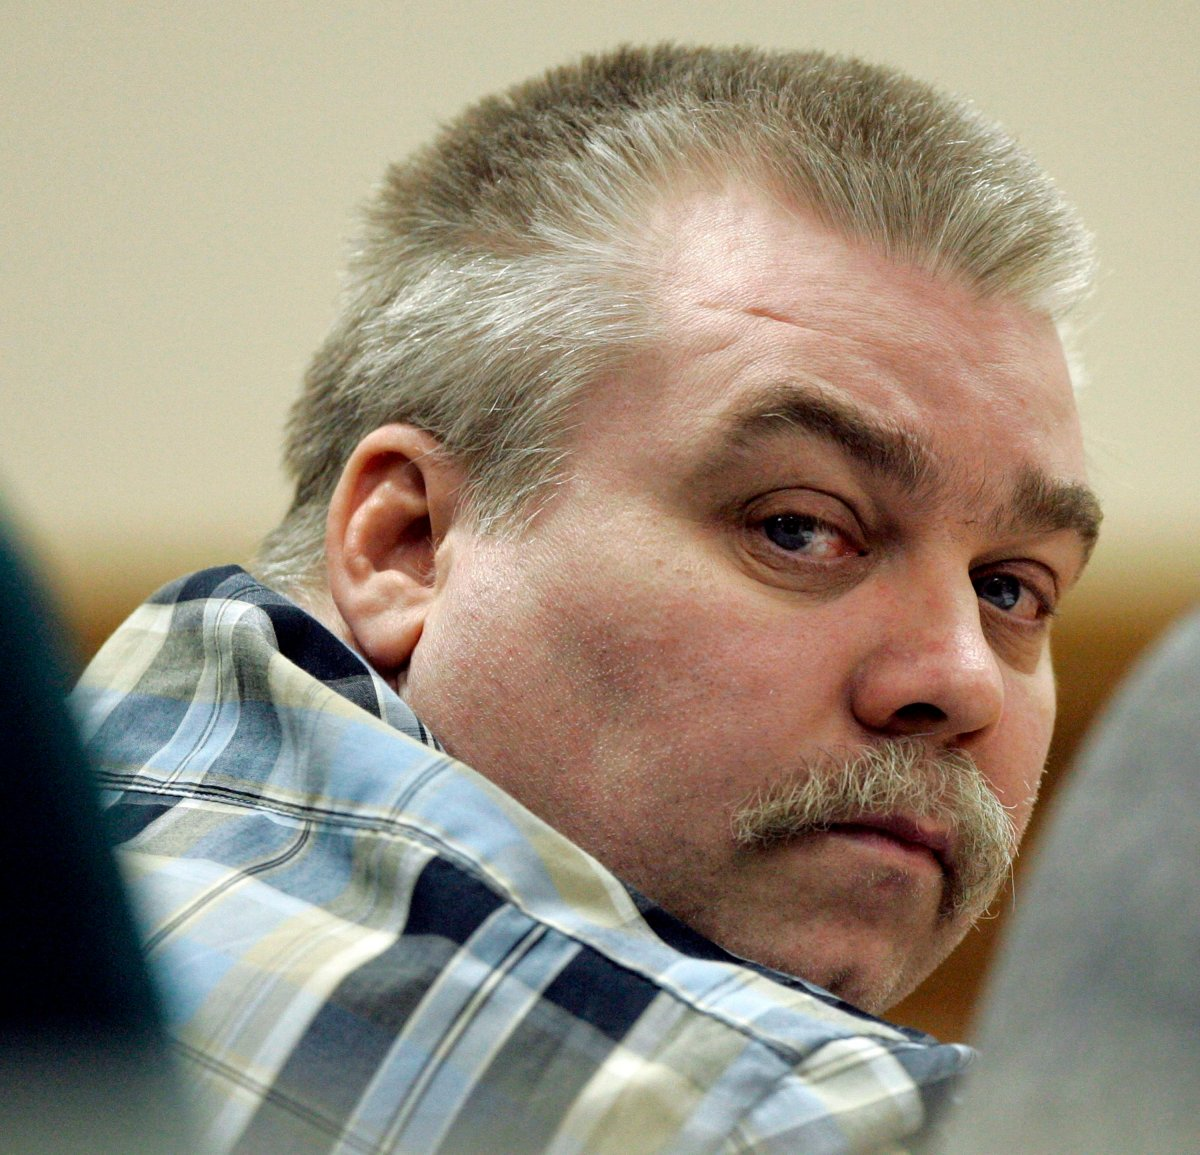 In this March 13, 2007, file photo, Steven Avery listens to testimony in the courtroom at the Calumet County Courthouse in Chilton, Wis.